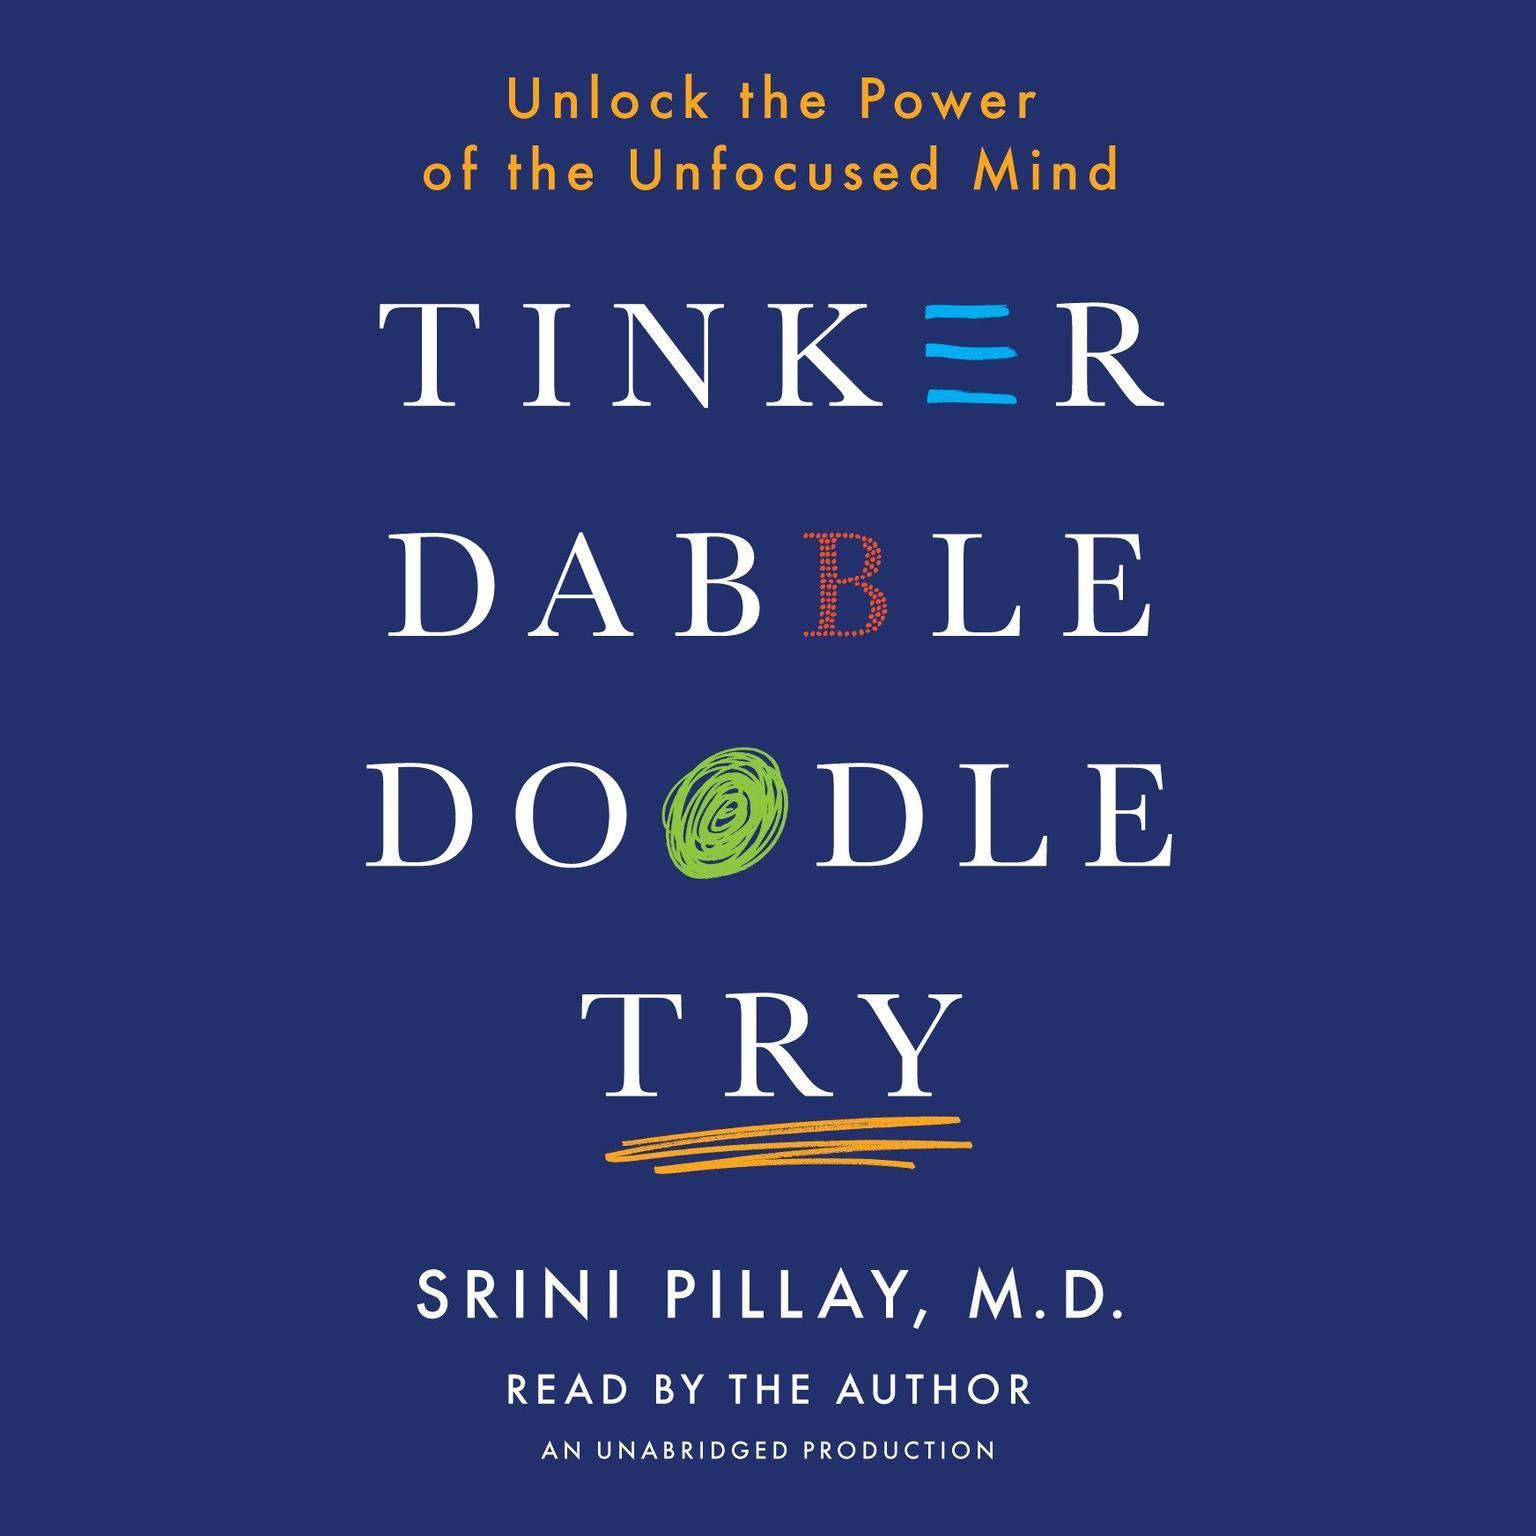 Printable Tinker Dabble Doodle Try: Unlock the Power of the Unfocused Mind Audiobook Cover Art